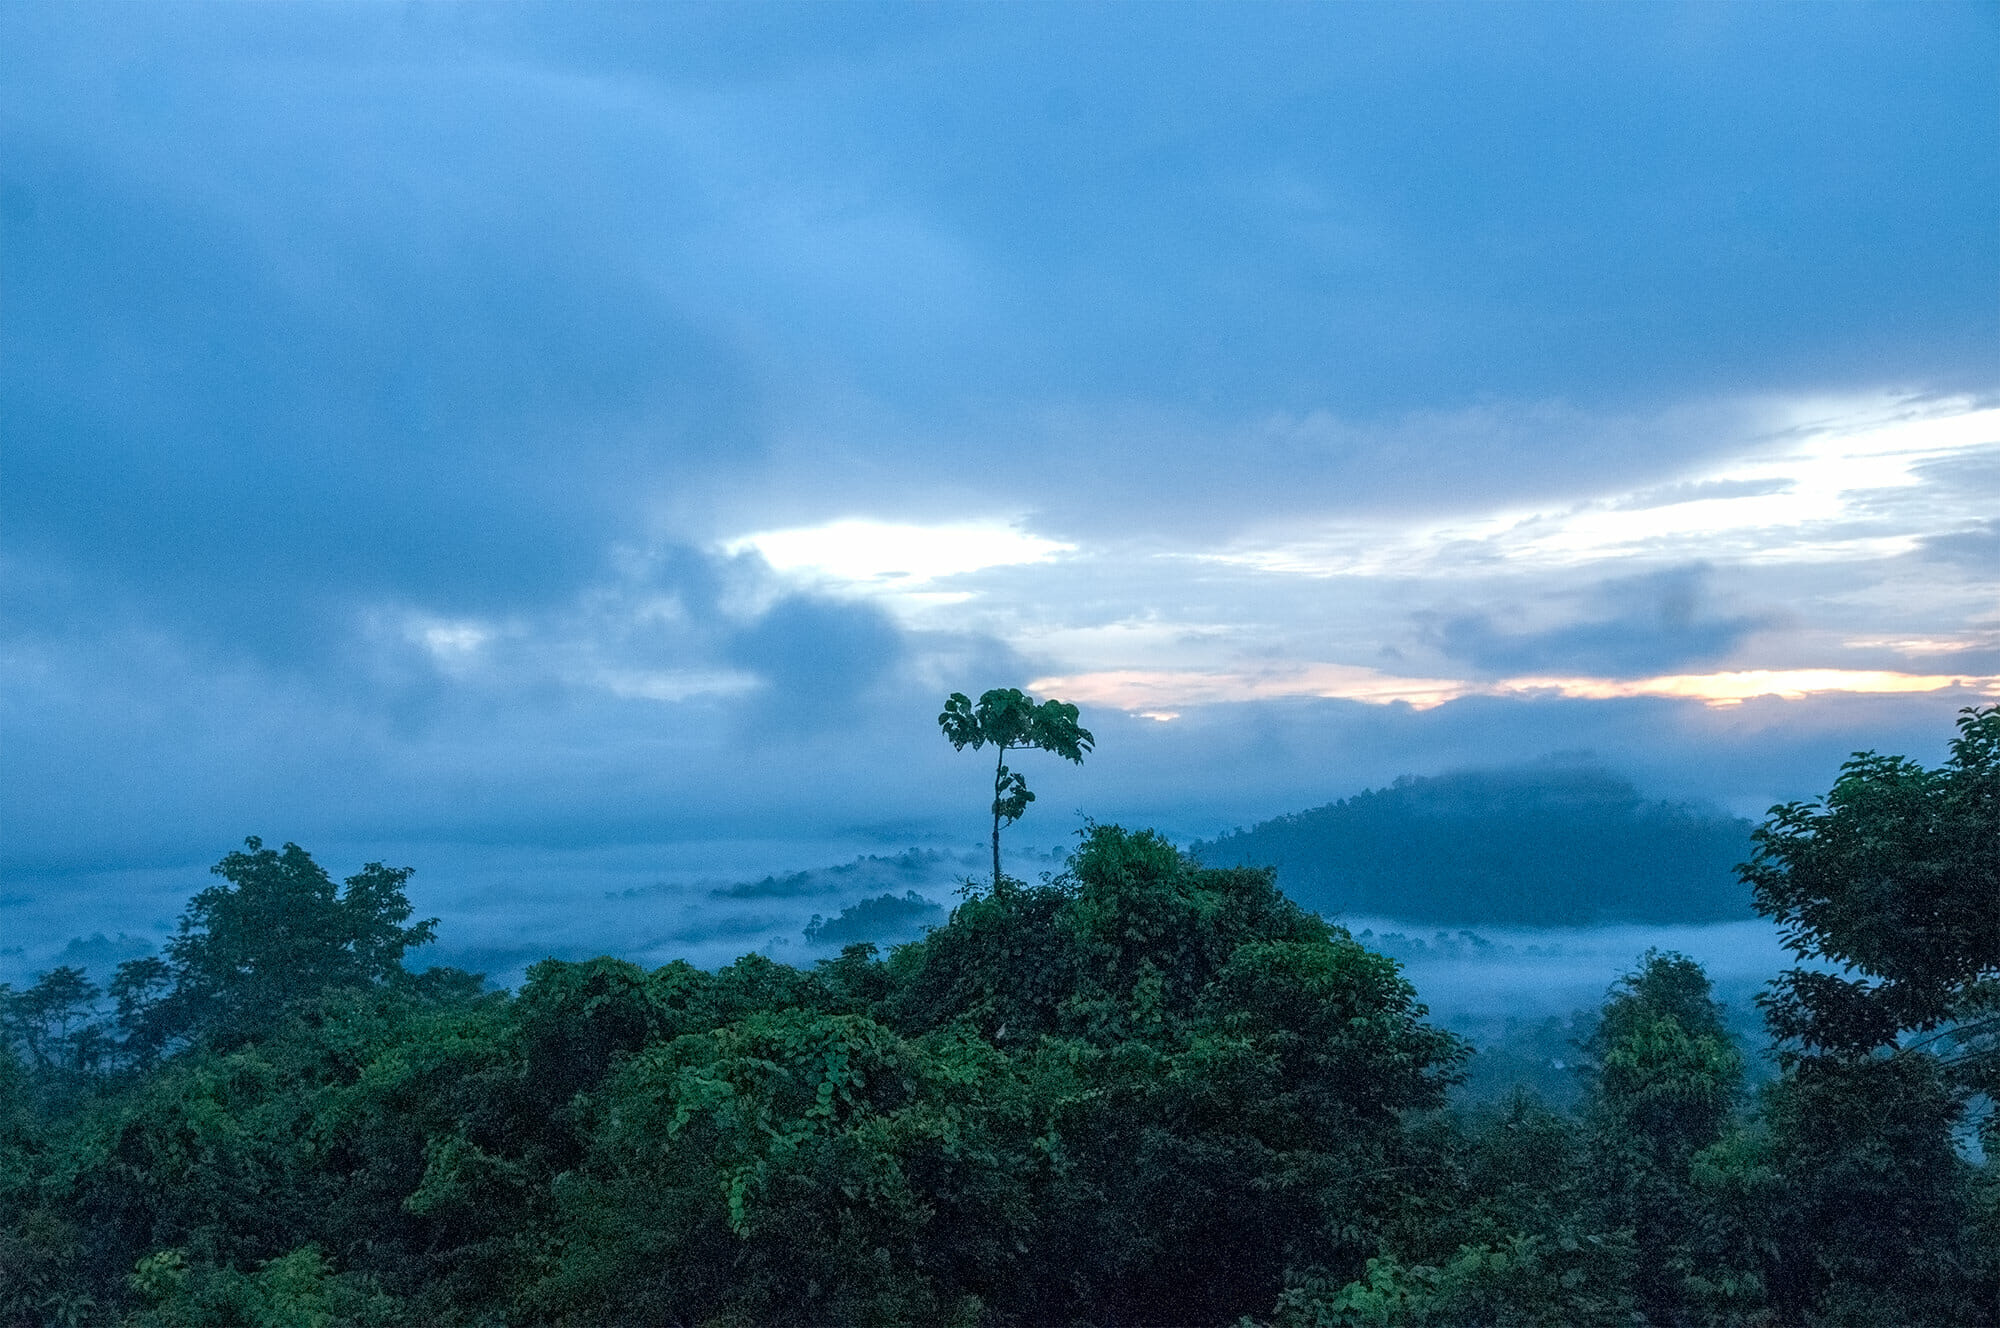 Cloudy sunrise at Danum Valley, Borneo